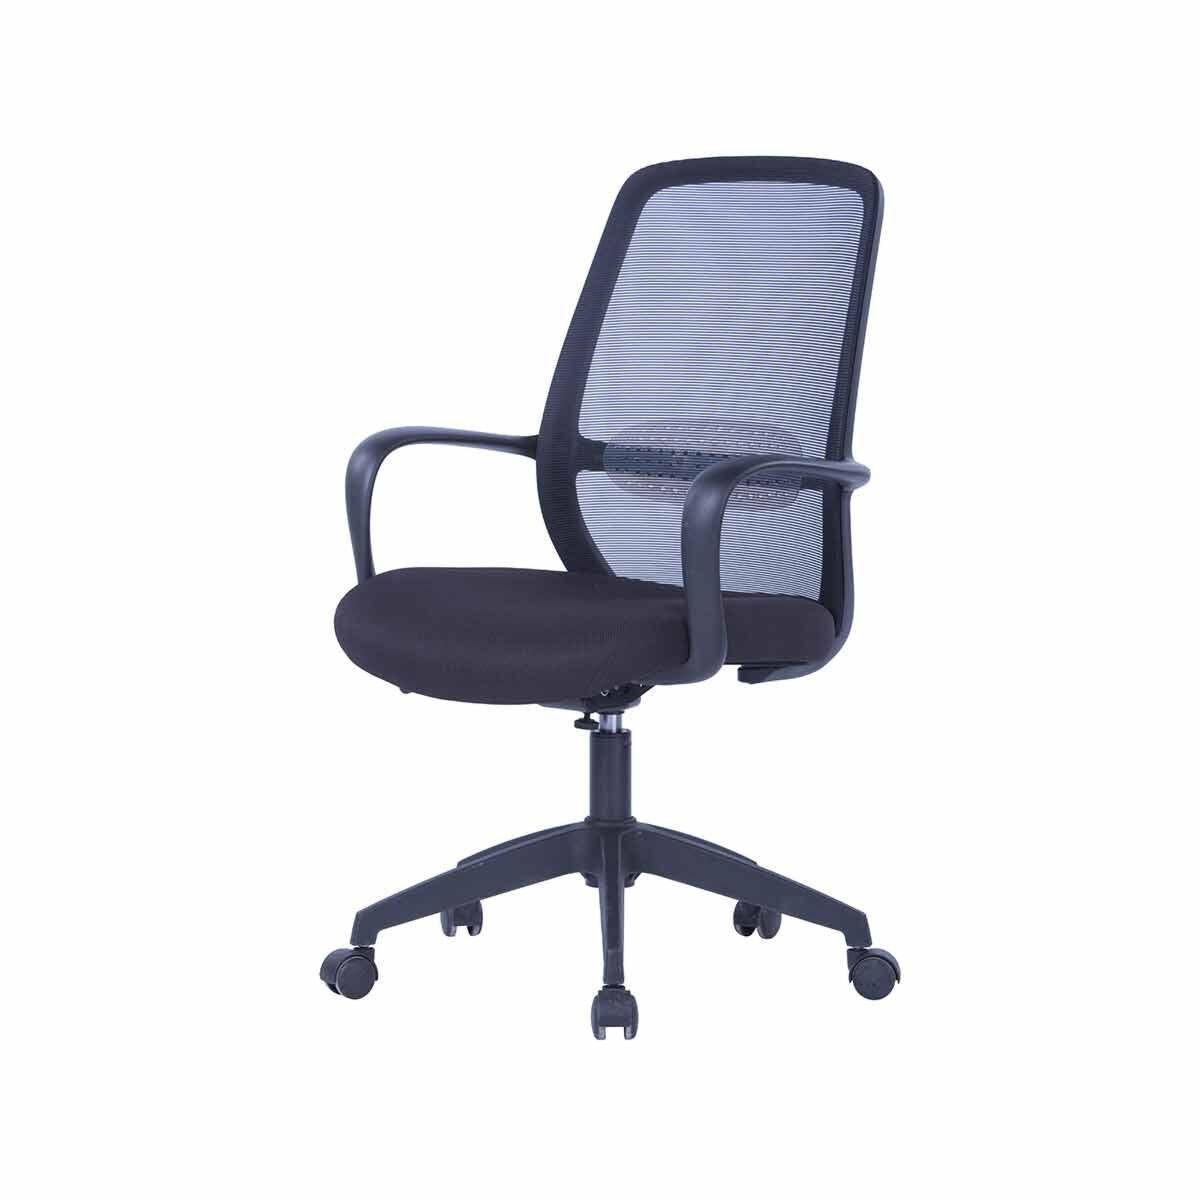 TC Office Soho Mesh Task Chair Black